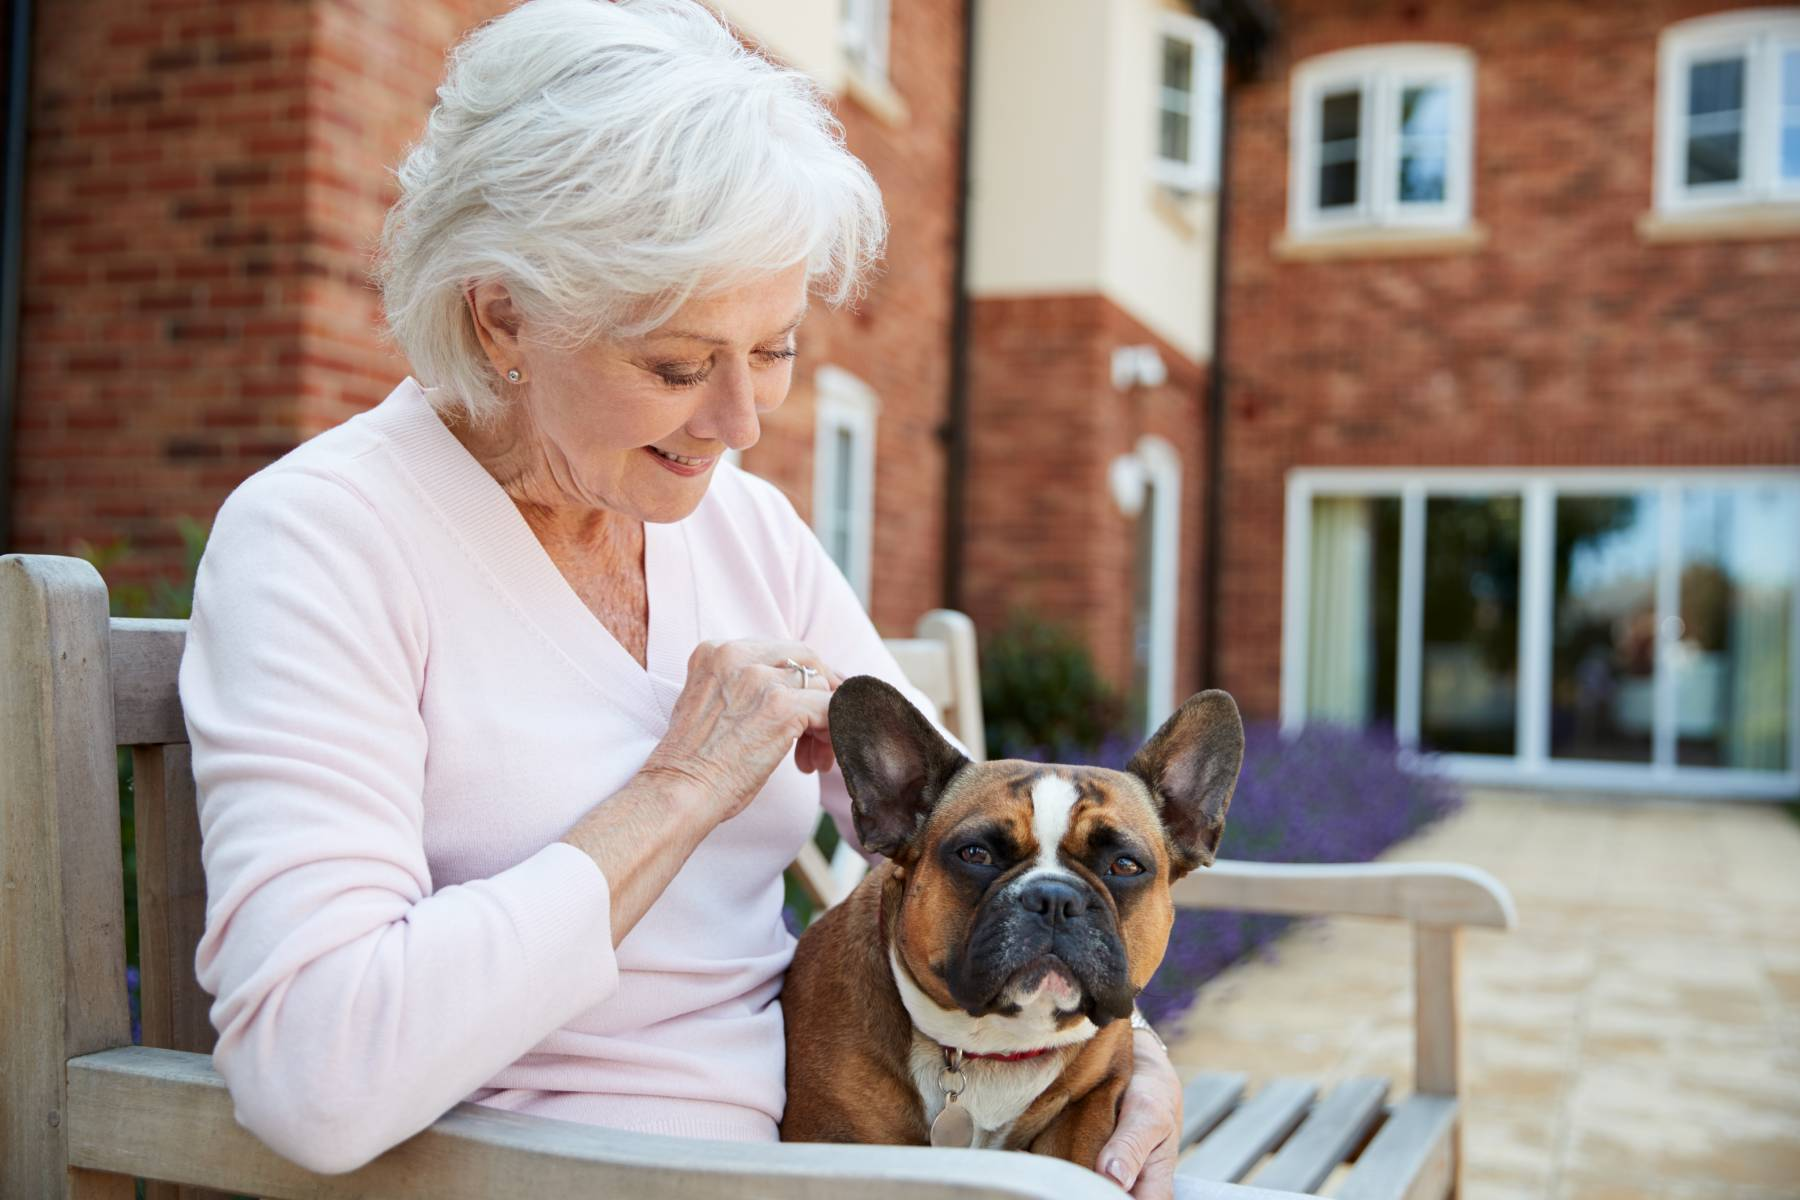 senior woman petting her dog while sitting outside on a bench